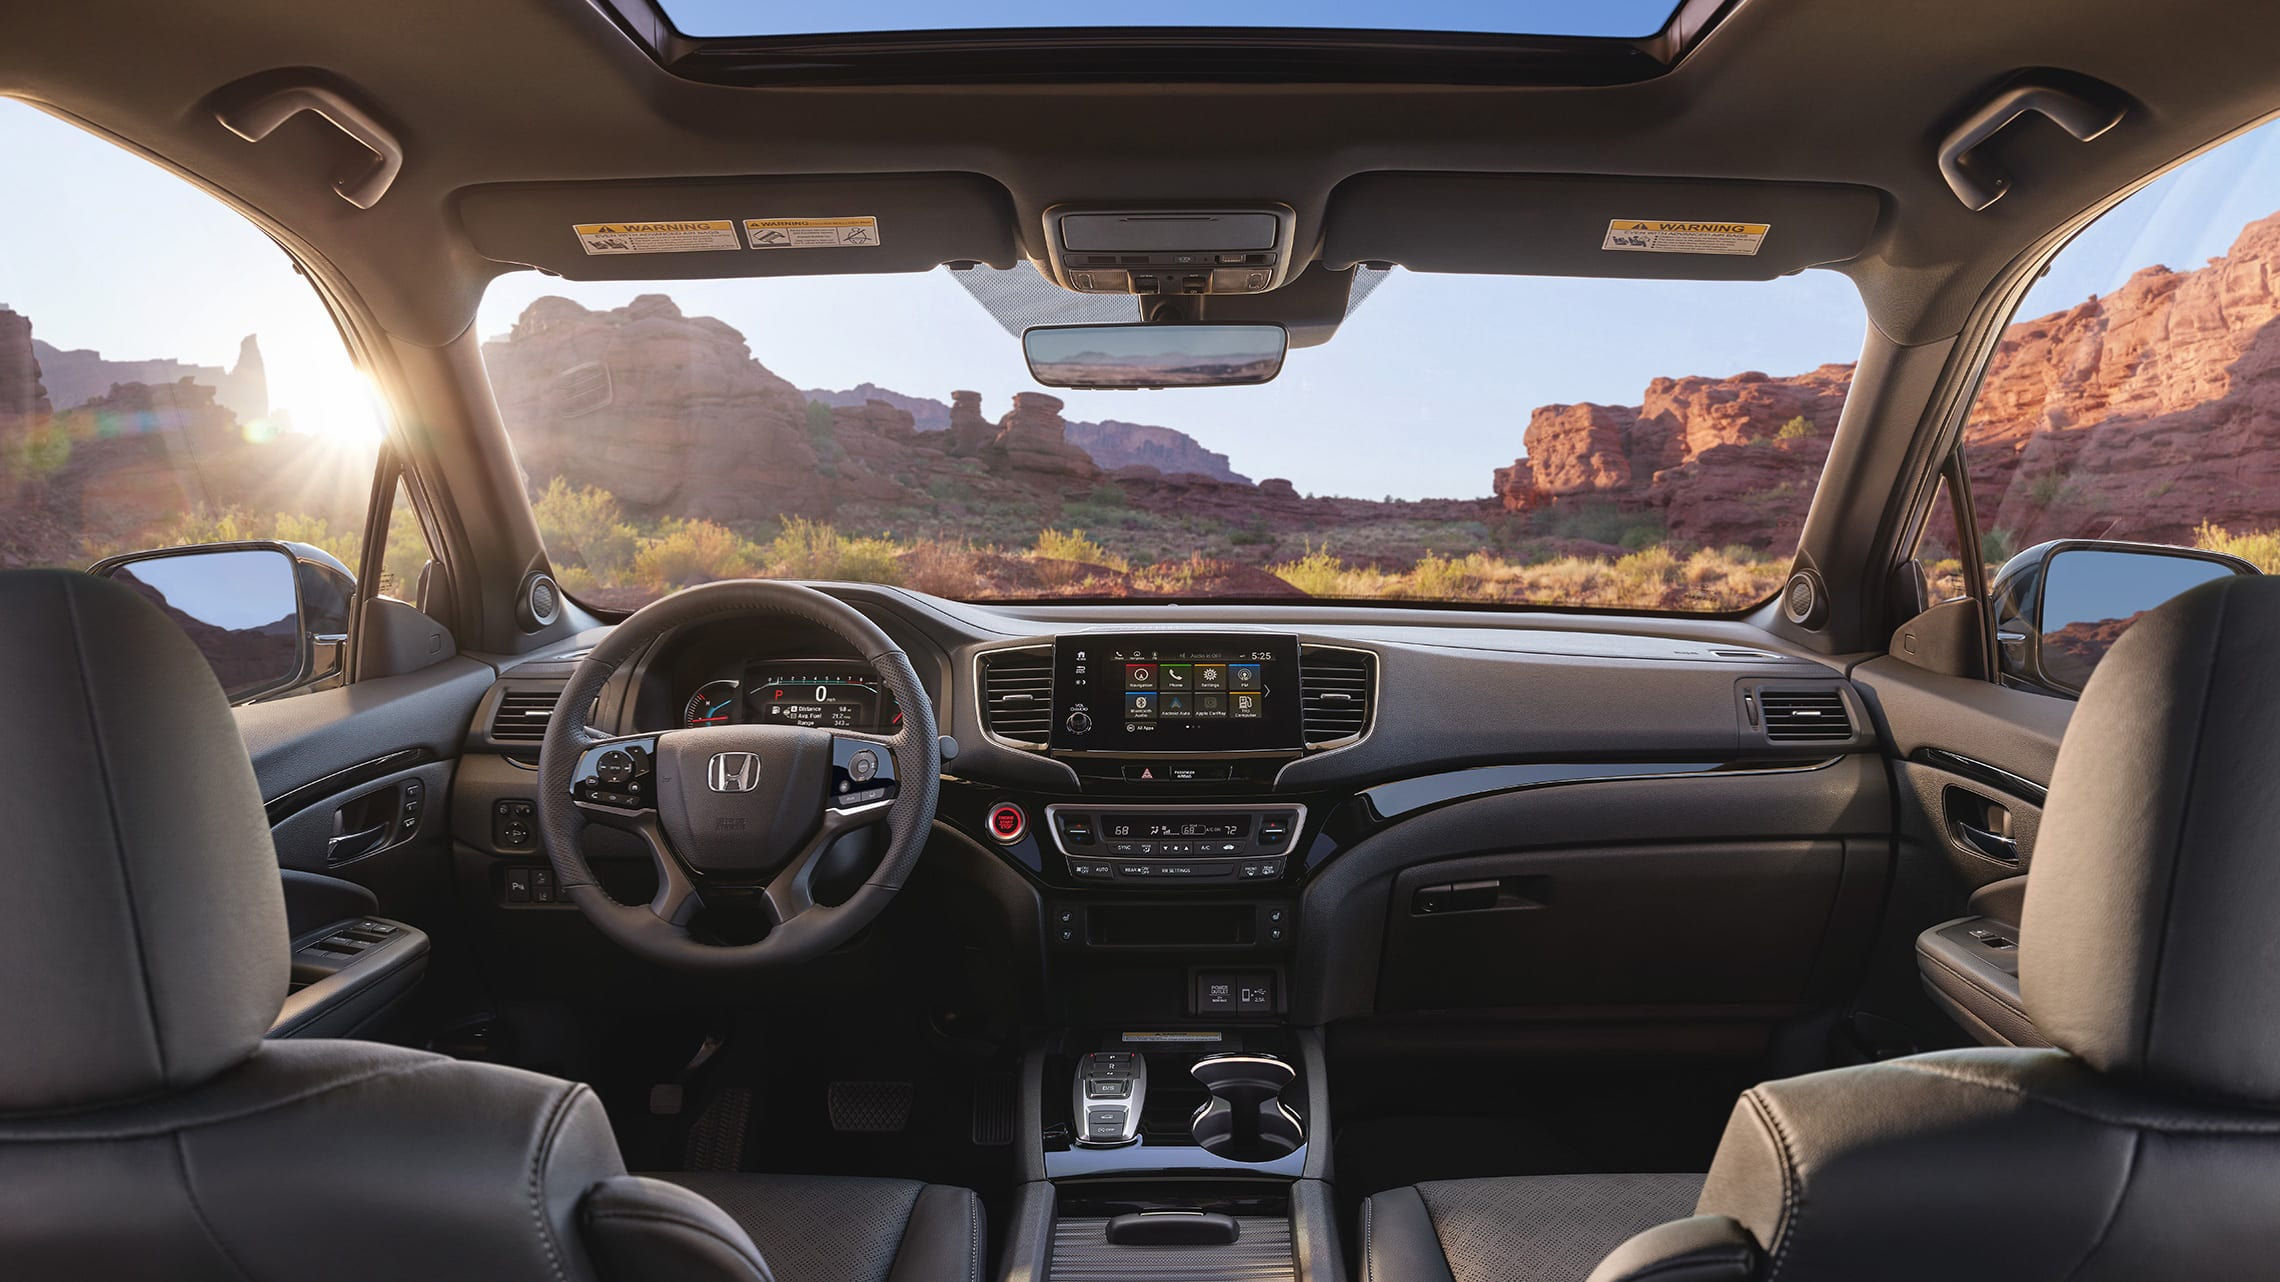 Interior view of the 2021 Honda Passport Elite with Black Leather showing the major instrument panel, featuring Apple CarPlay® integration on the Display Audio touch-screen.